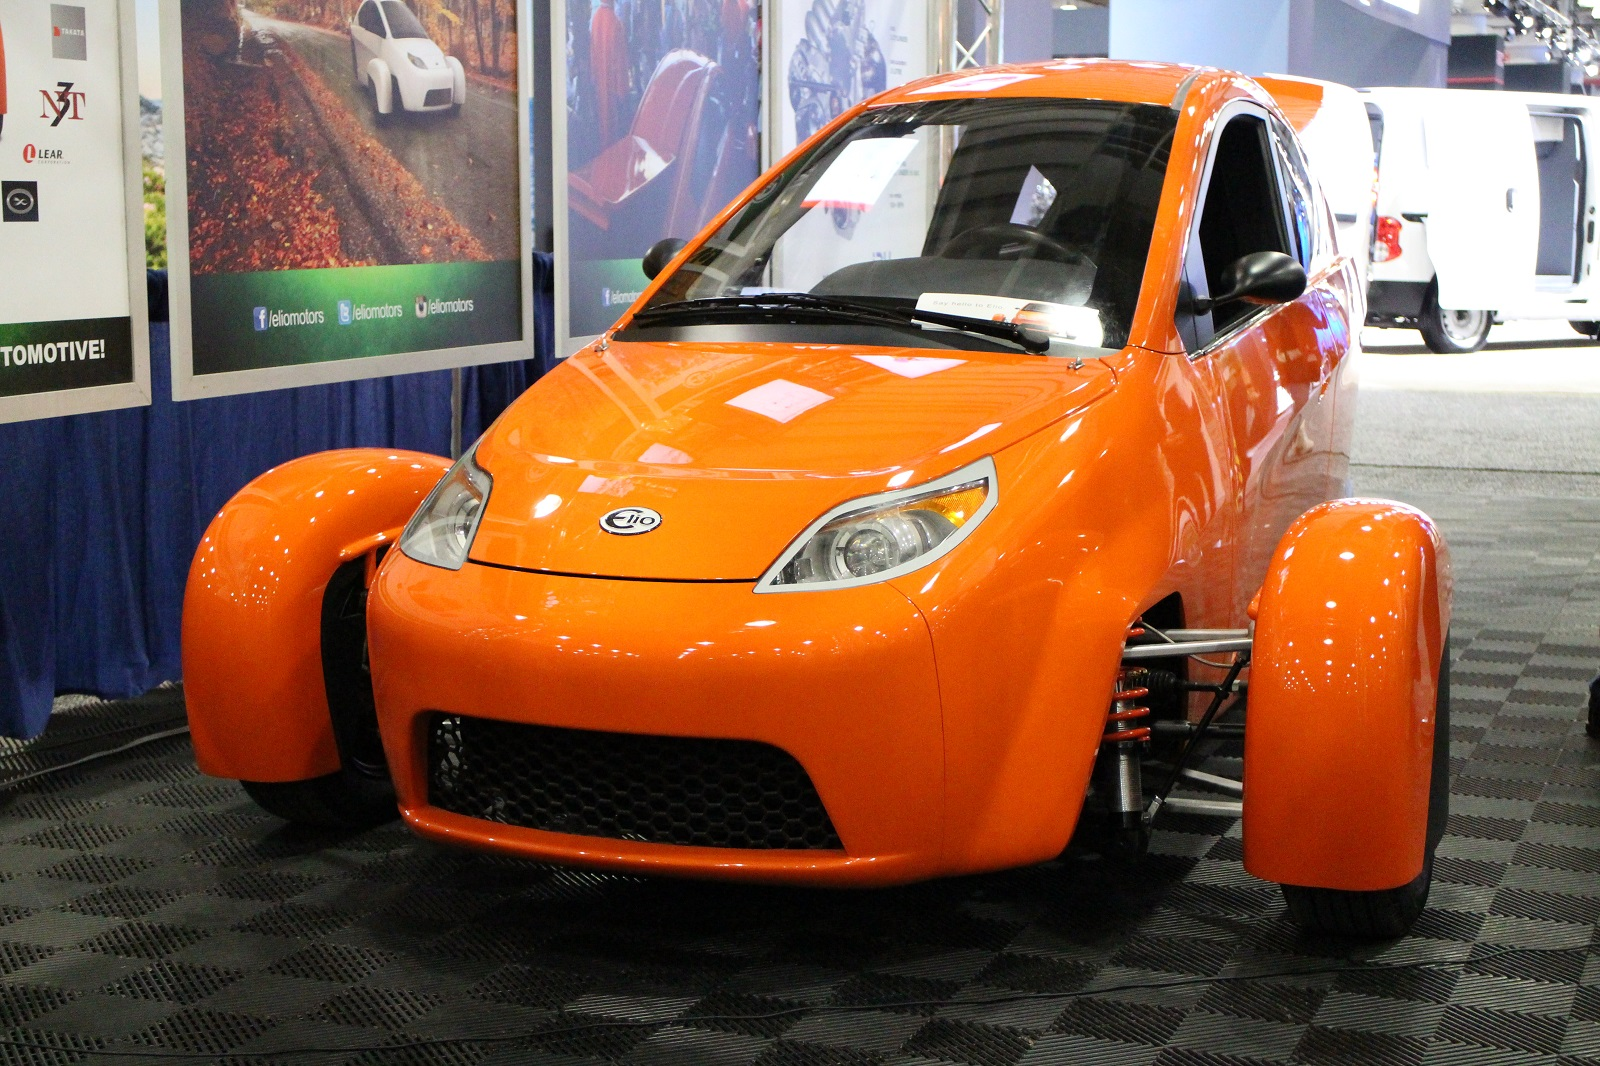 Nhtsa To Alter Vehicle Code To Prevent 3 Wheelers Like Elio